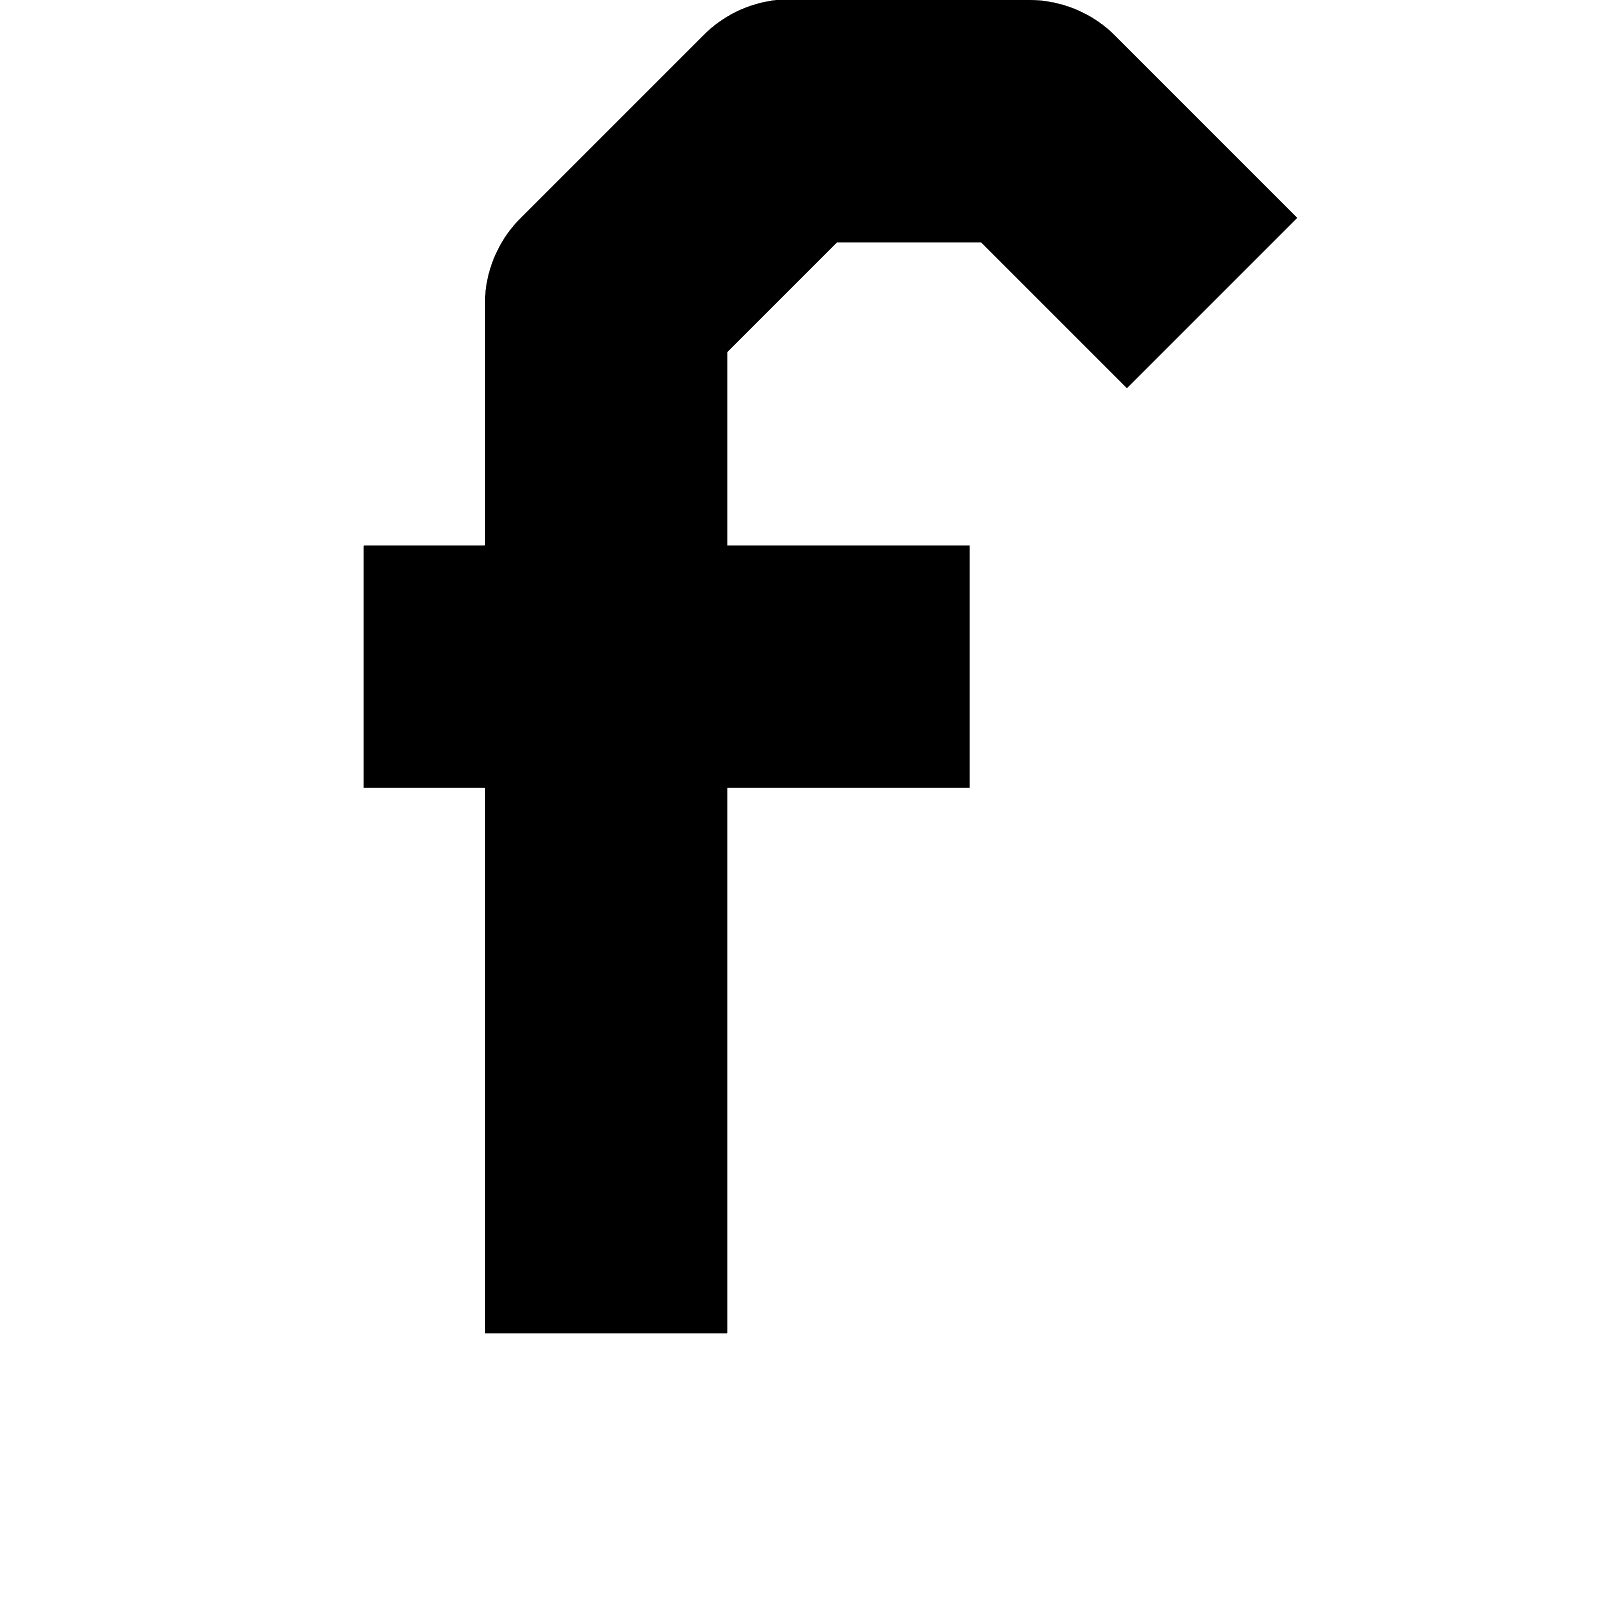 Transparent f. Letter png image with